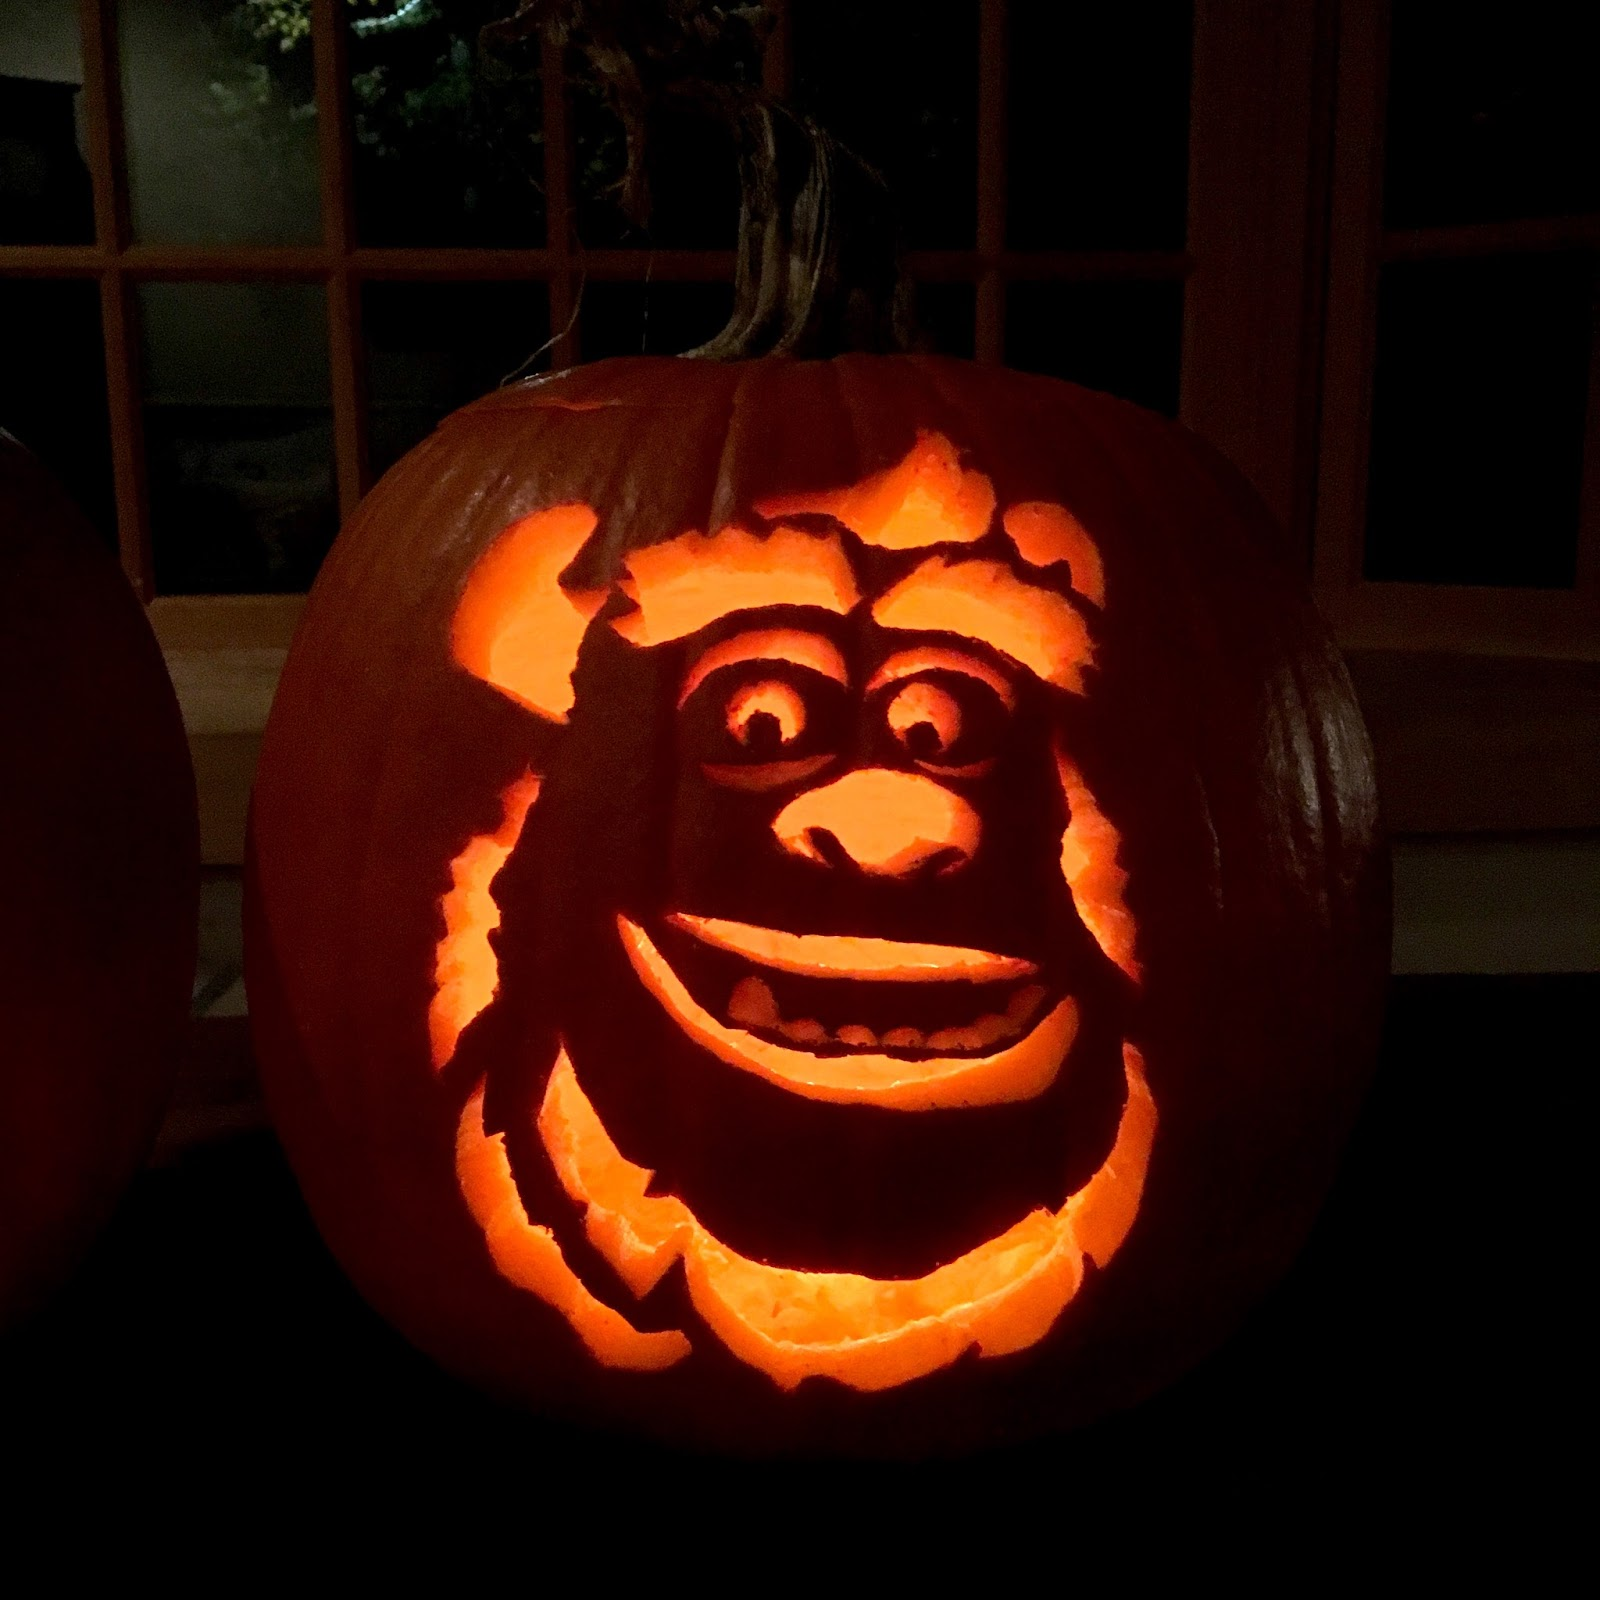 Dan the pixar fan events pixar themed pumpkin carving 2016 for Sully pumpkin template